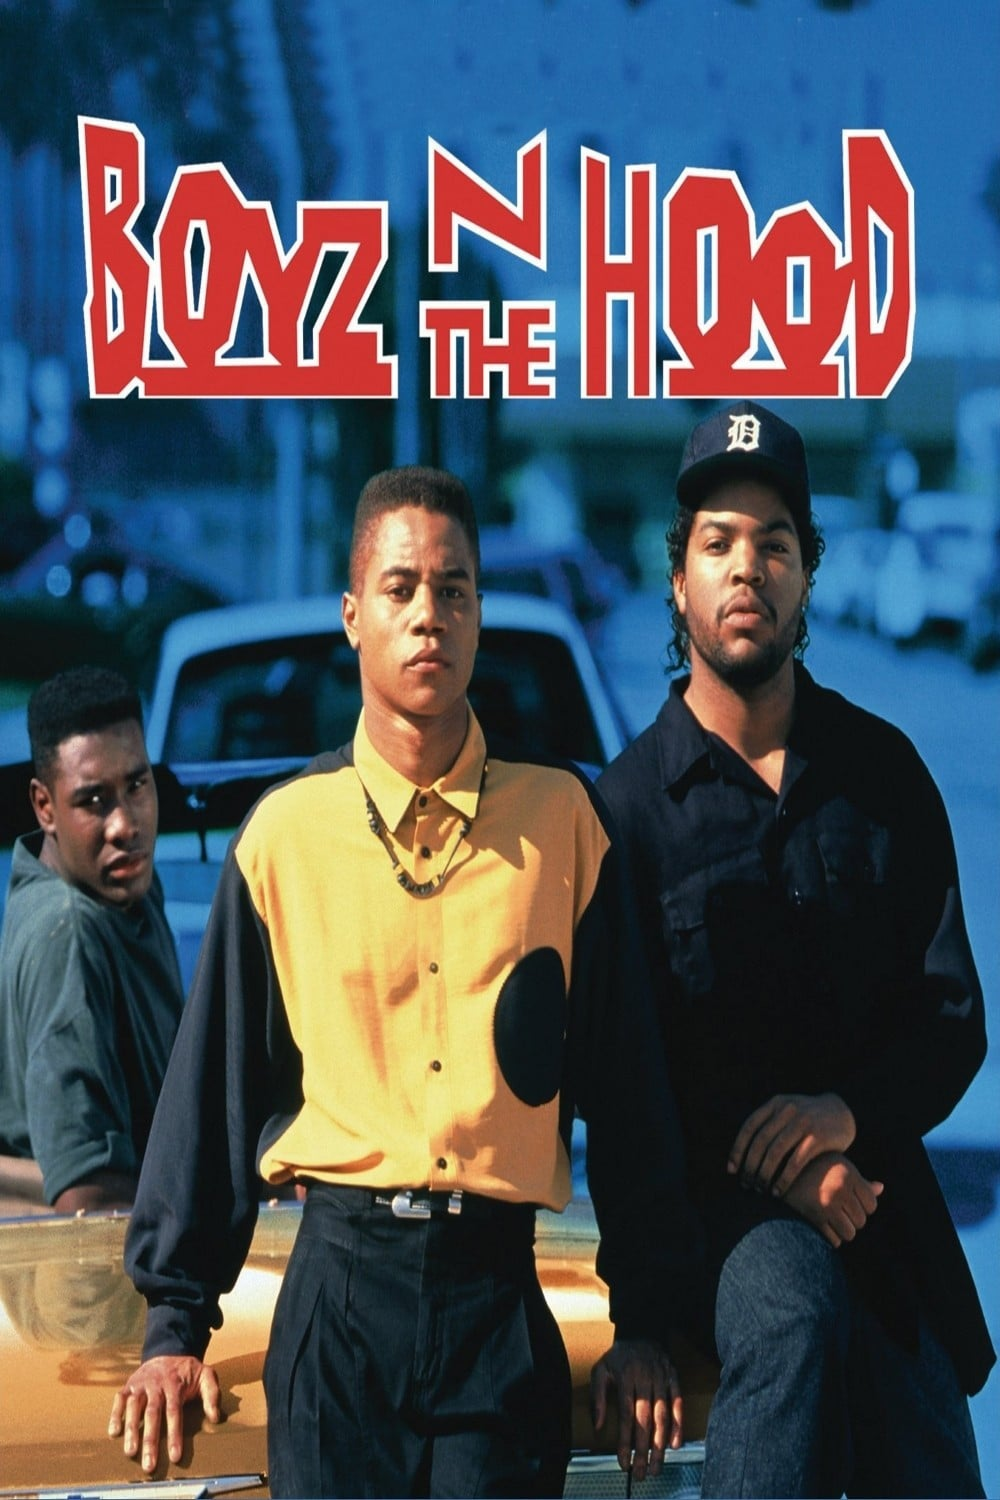 boyz n the hood summary essay Amad elia cin 303 response to boyz n the hood and review by roger ebert in the chicago sun-times the more times i viewed this film, the more i became captivated by the poignant message singleton is trying to convey in boyz n the hood.